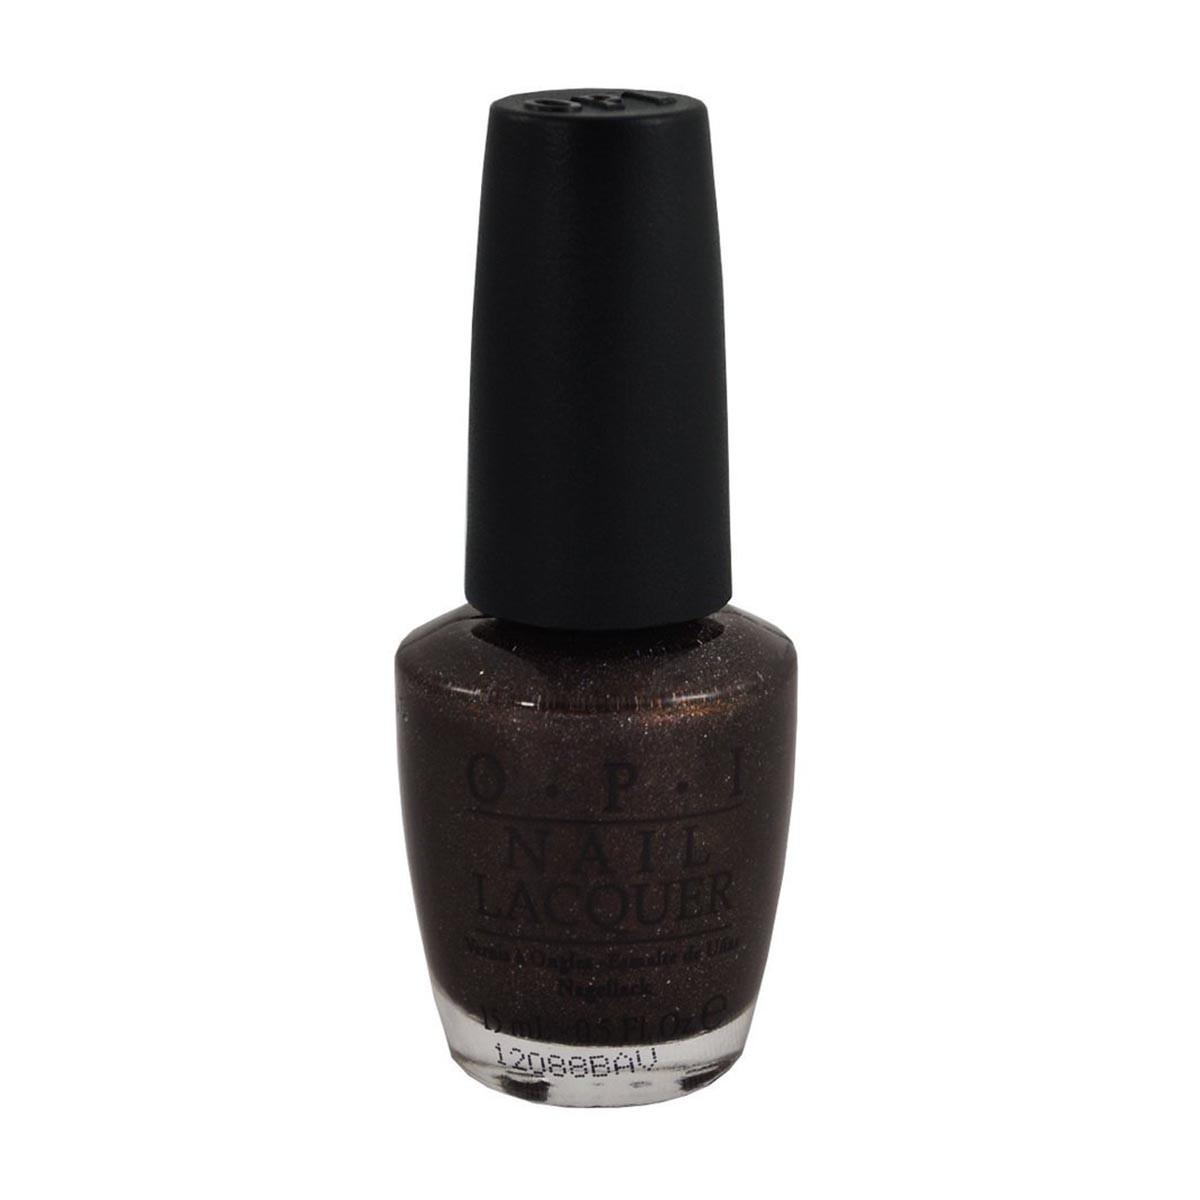 Opi Nail Lacquer Nlb59 My Private Jet